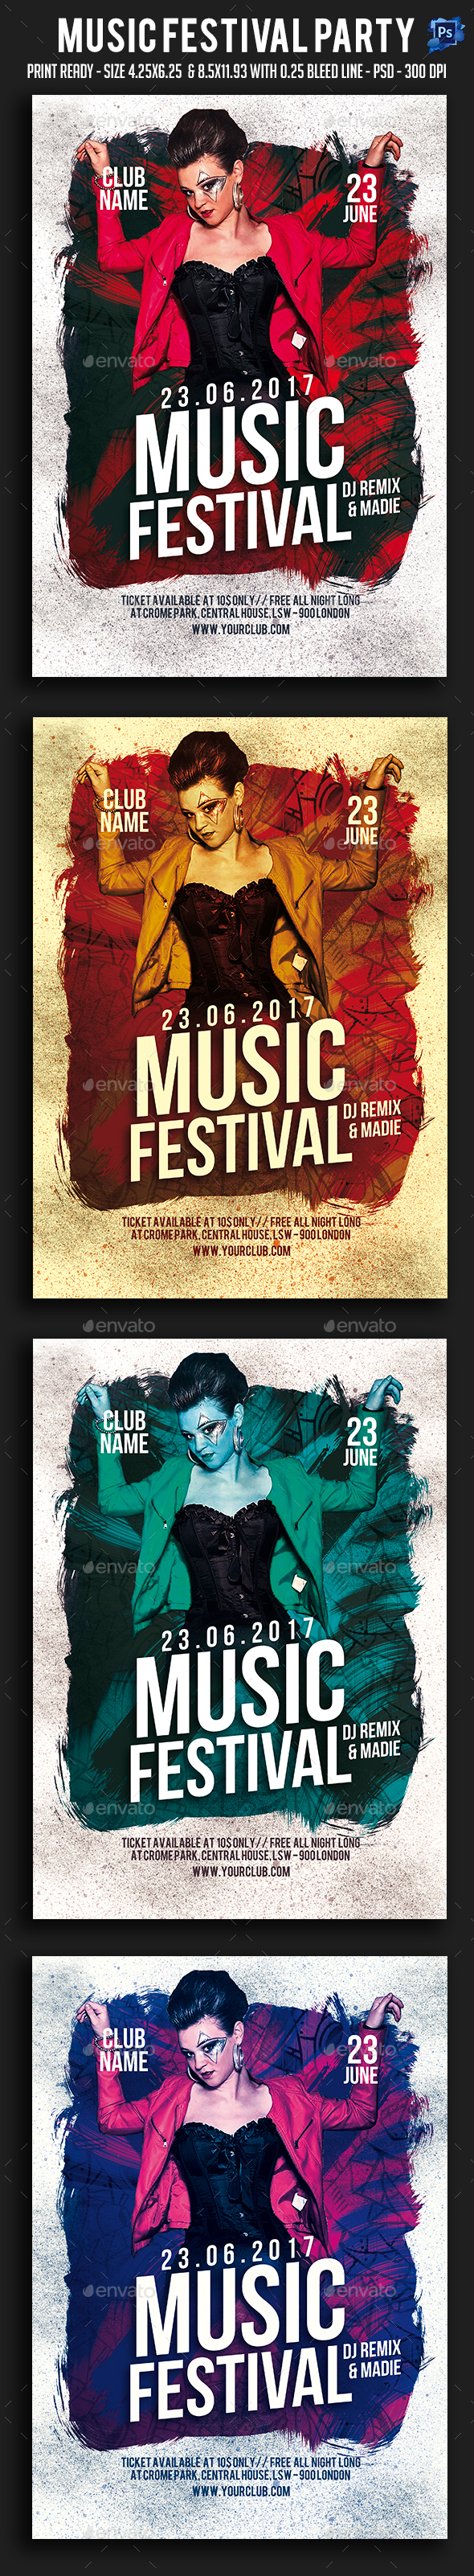 Music Festival Party Flyer - Clubs & Parties Events